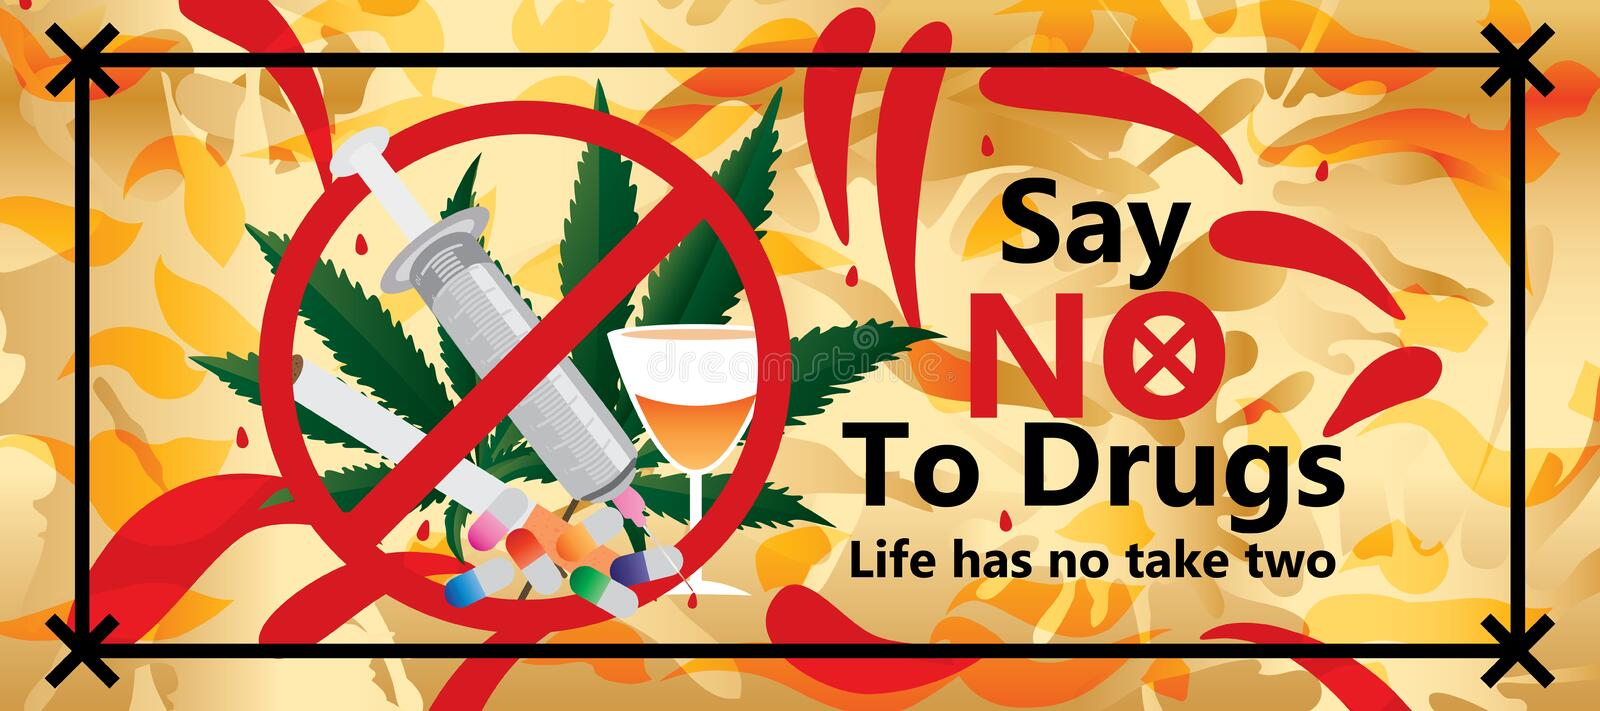 Say No To Drugs And Alcohol Posters